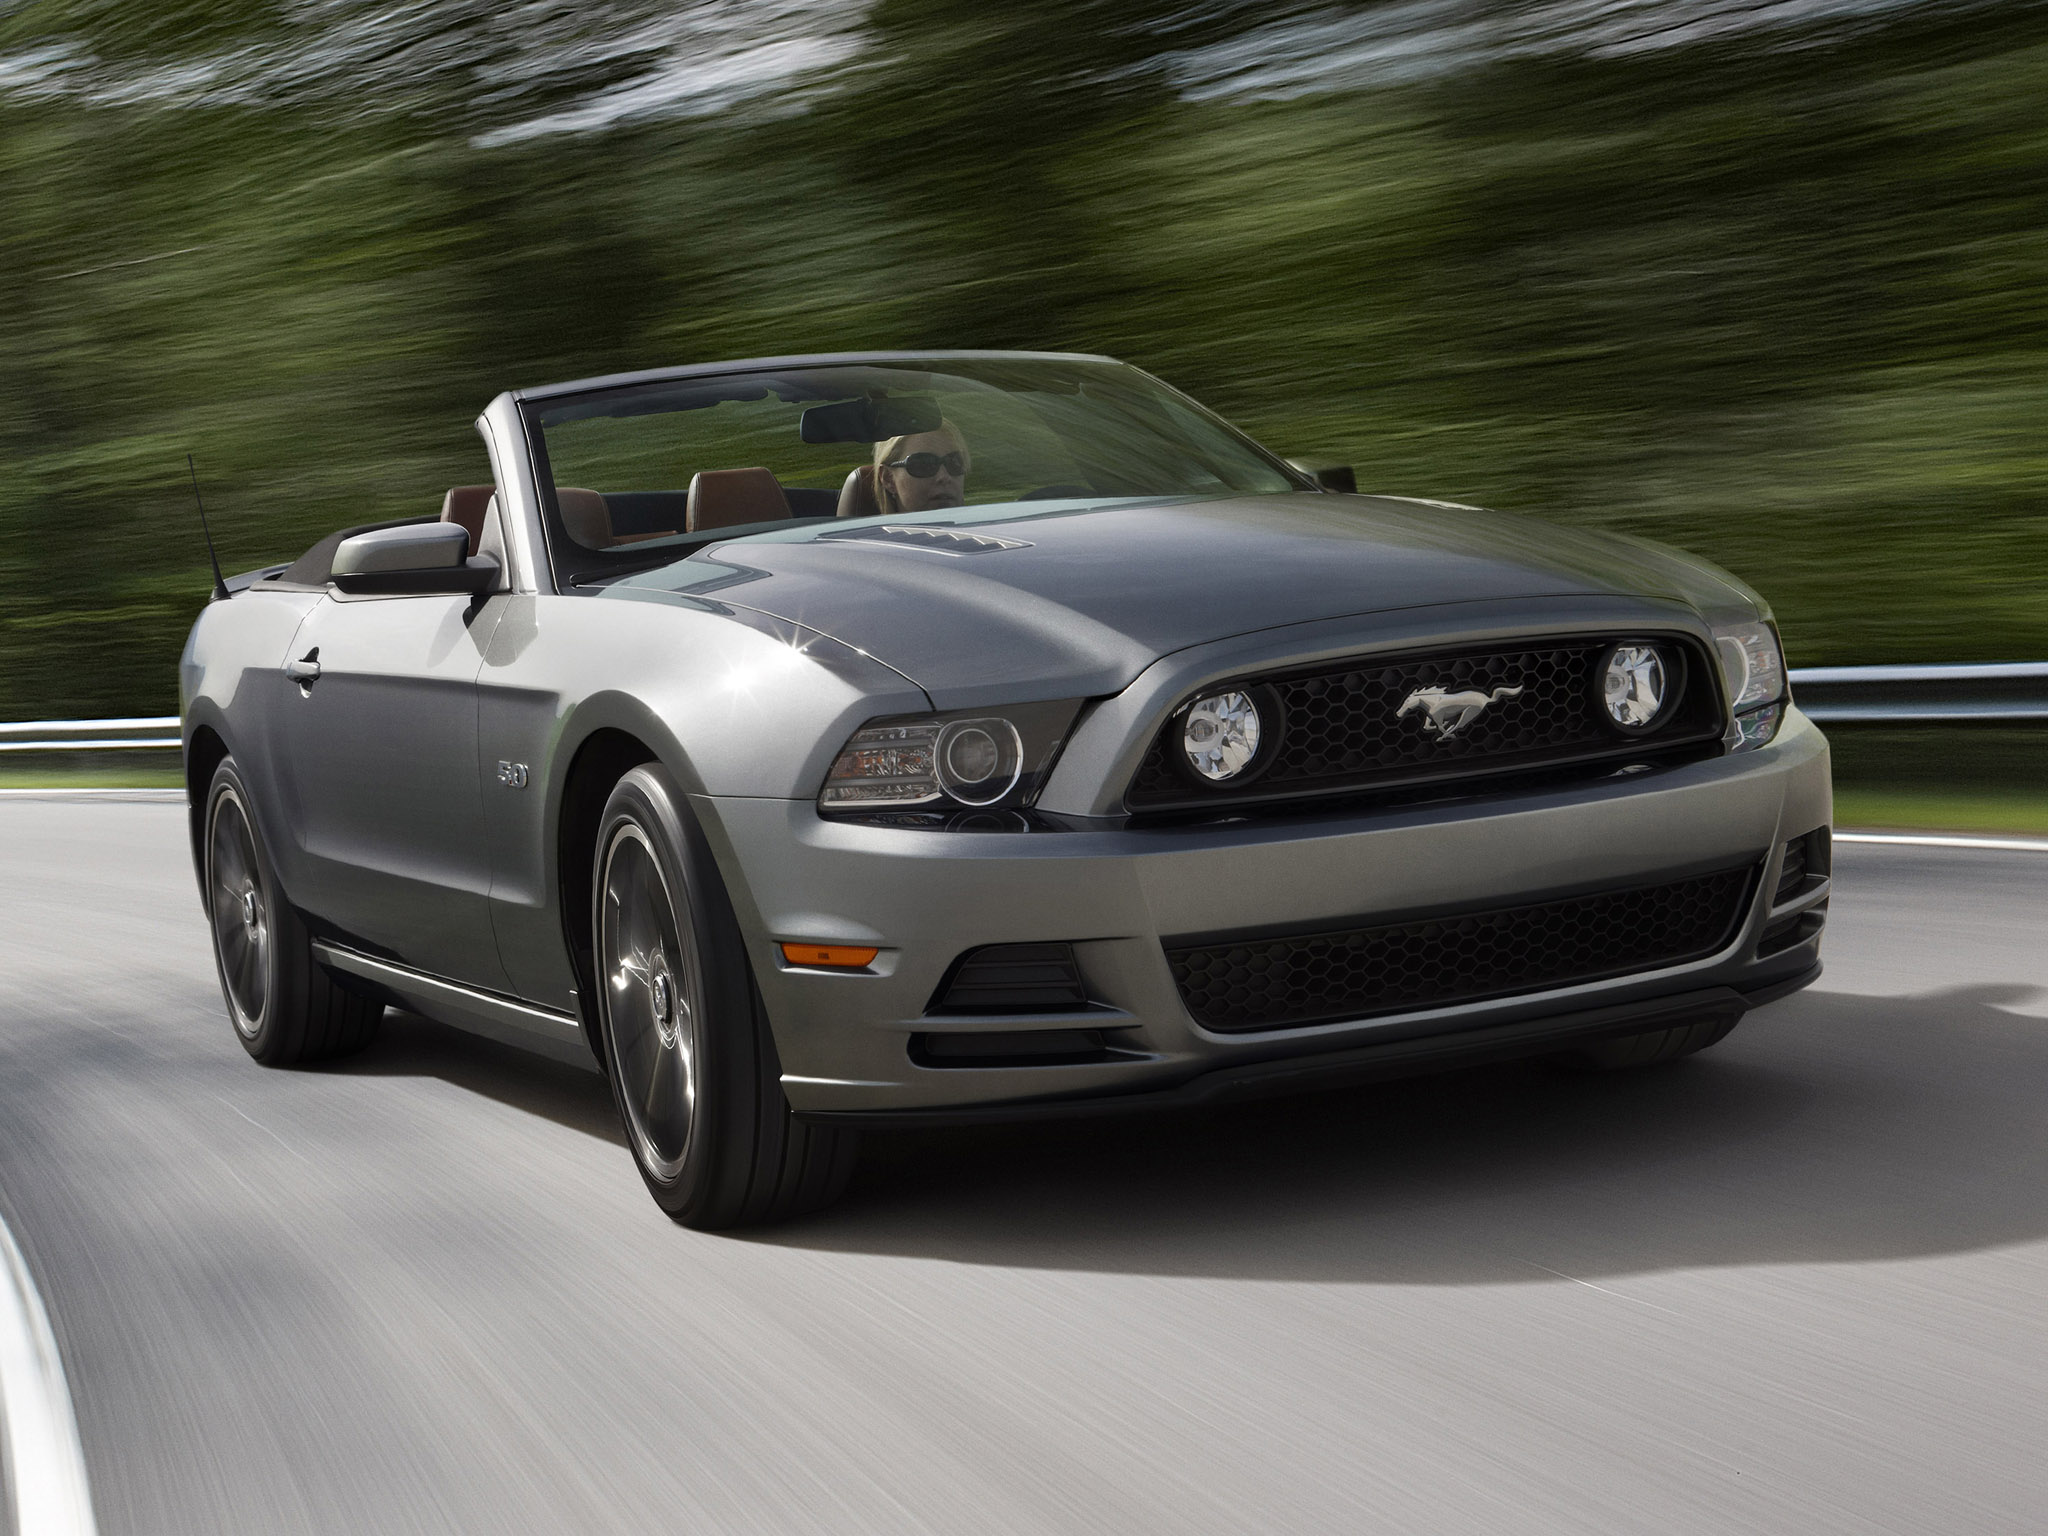 ford mustang 5 0 gt convertible 2012 ford mustang 5 0 gt. Black Bedroom Furniture Sets. Home Design Ideas